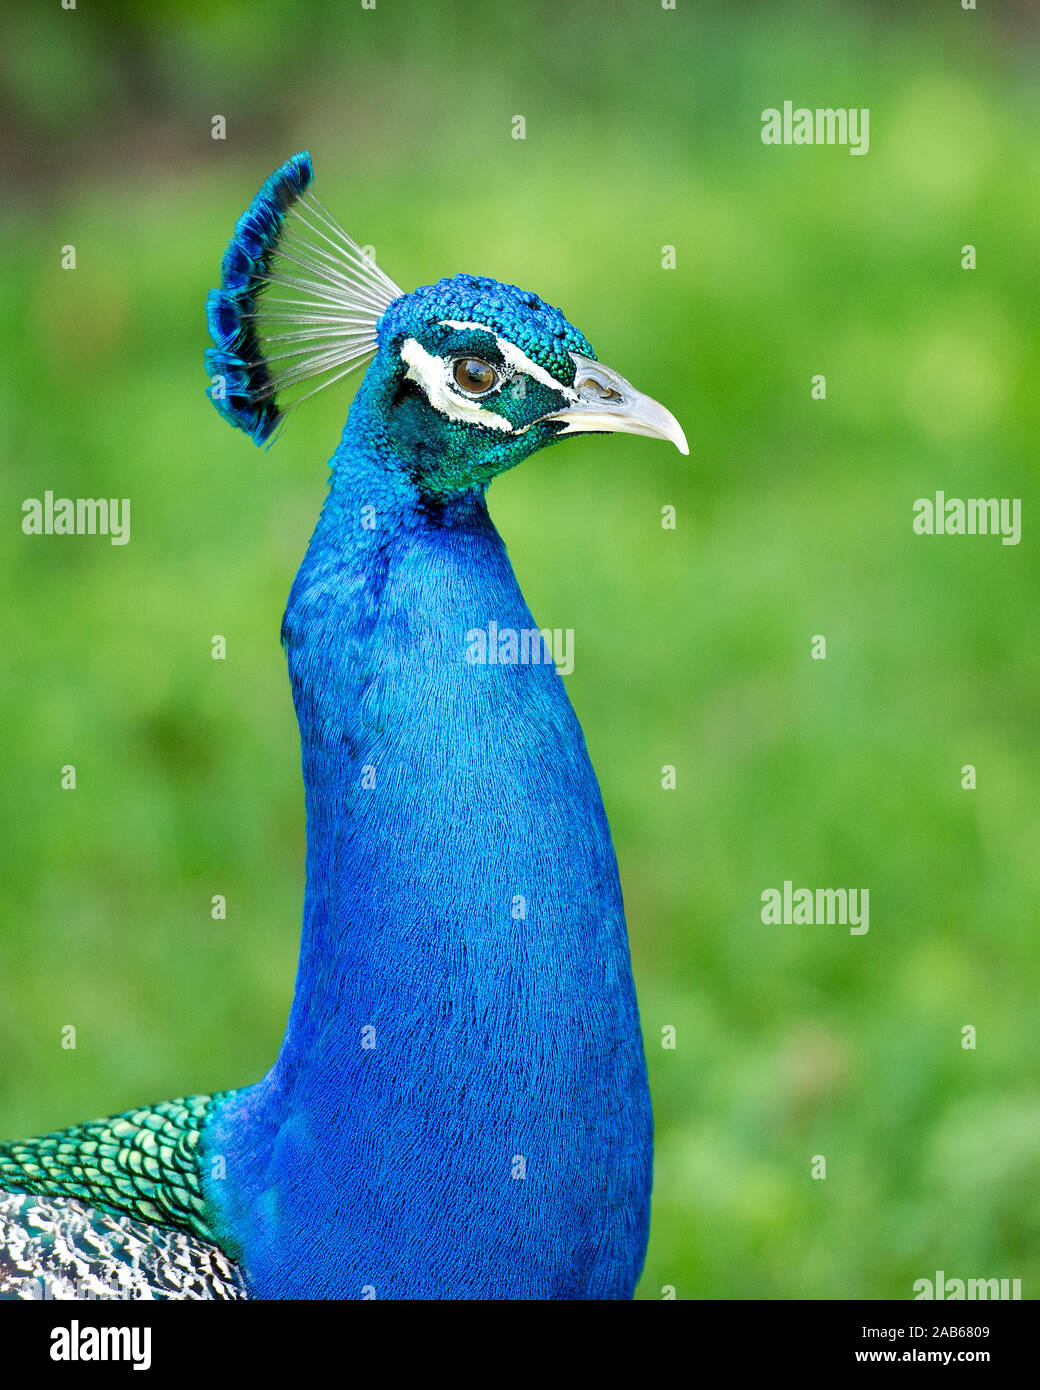 Peacock bird, close-up head profile view the beautiful colorful bird. Stock Photo